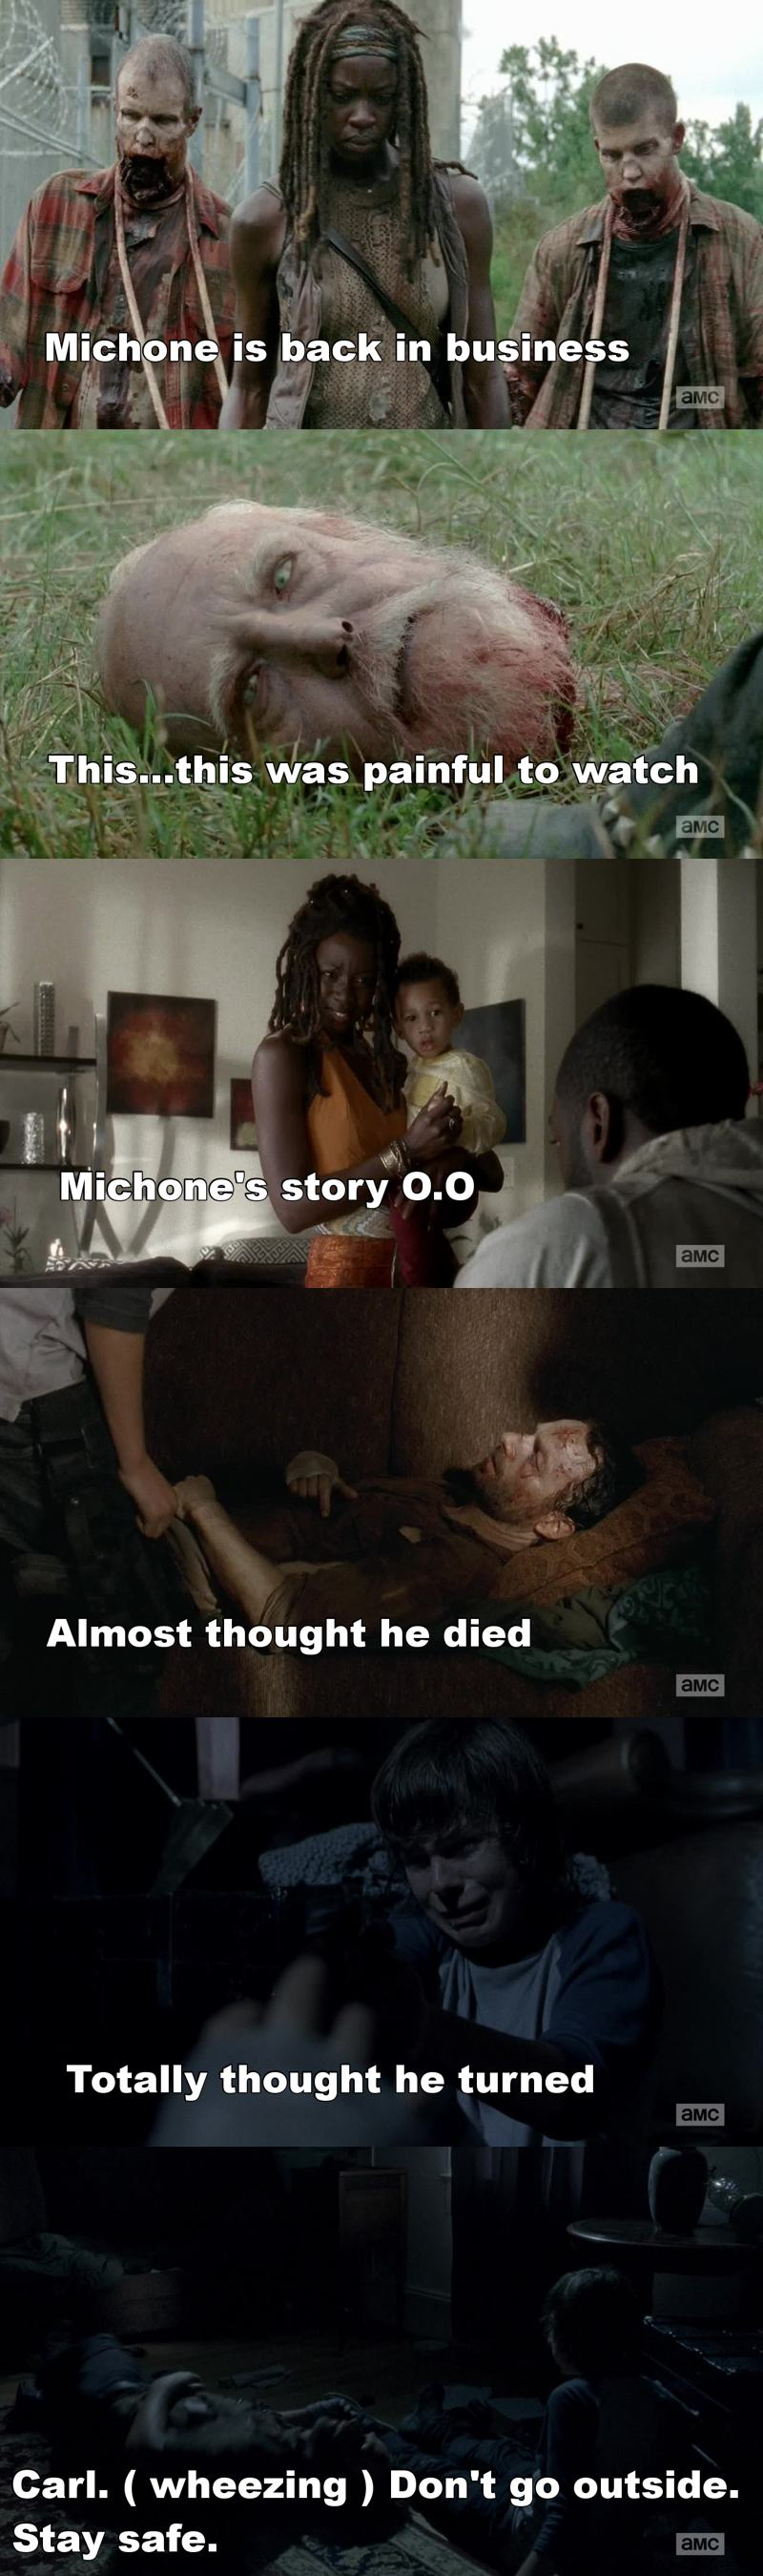 """Even when he's half dead, all he says is """"Carl, don't go outside, stay safe"""" Would have been horrible if Rick hadn't survived."""